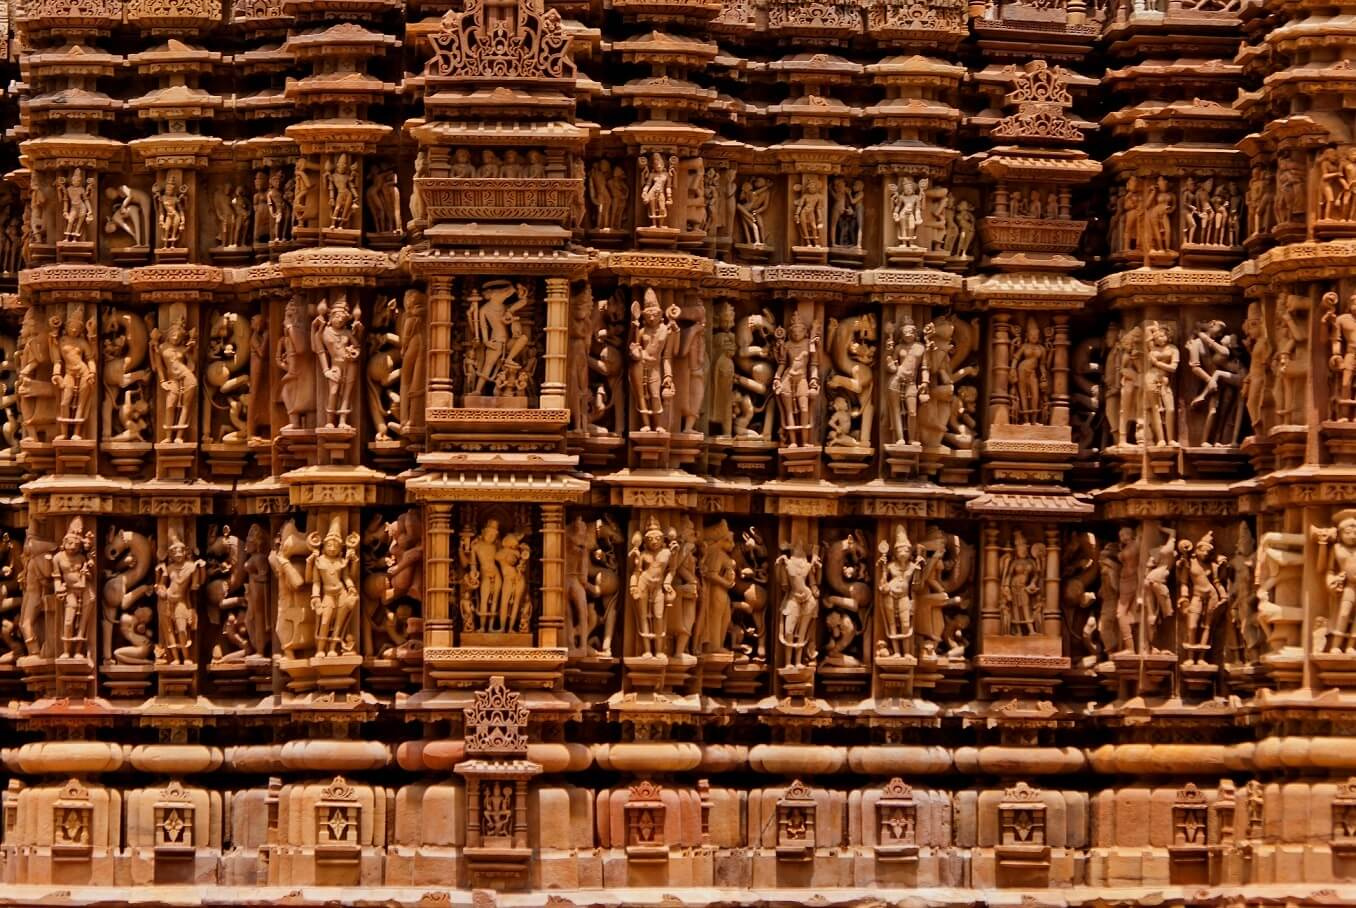 Khajuraho Temple's erotic sculptures and Beautiful carvings